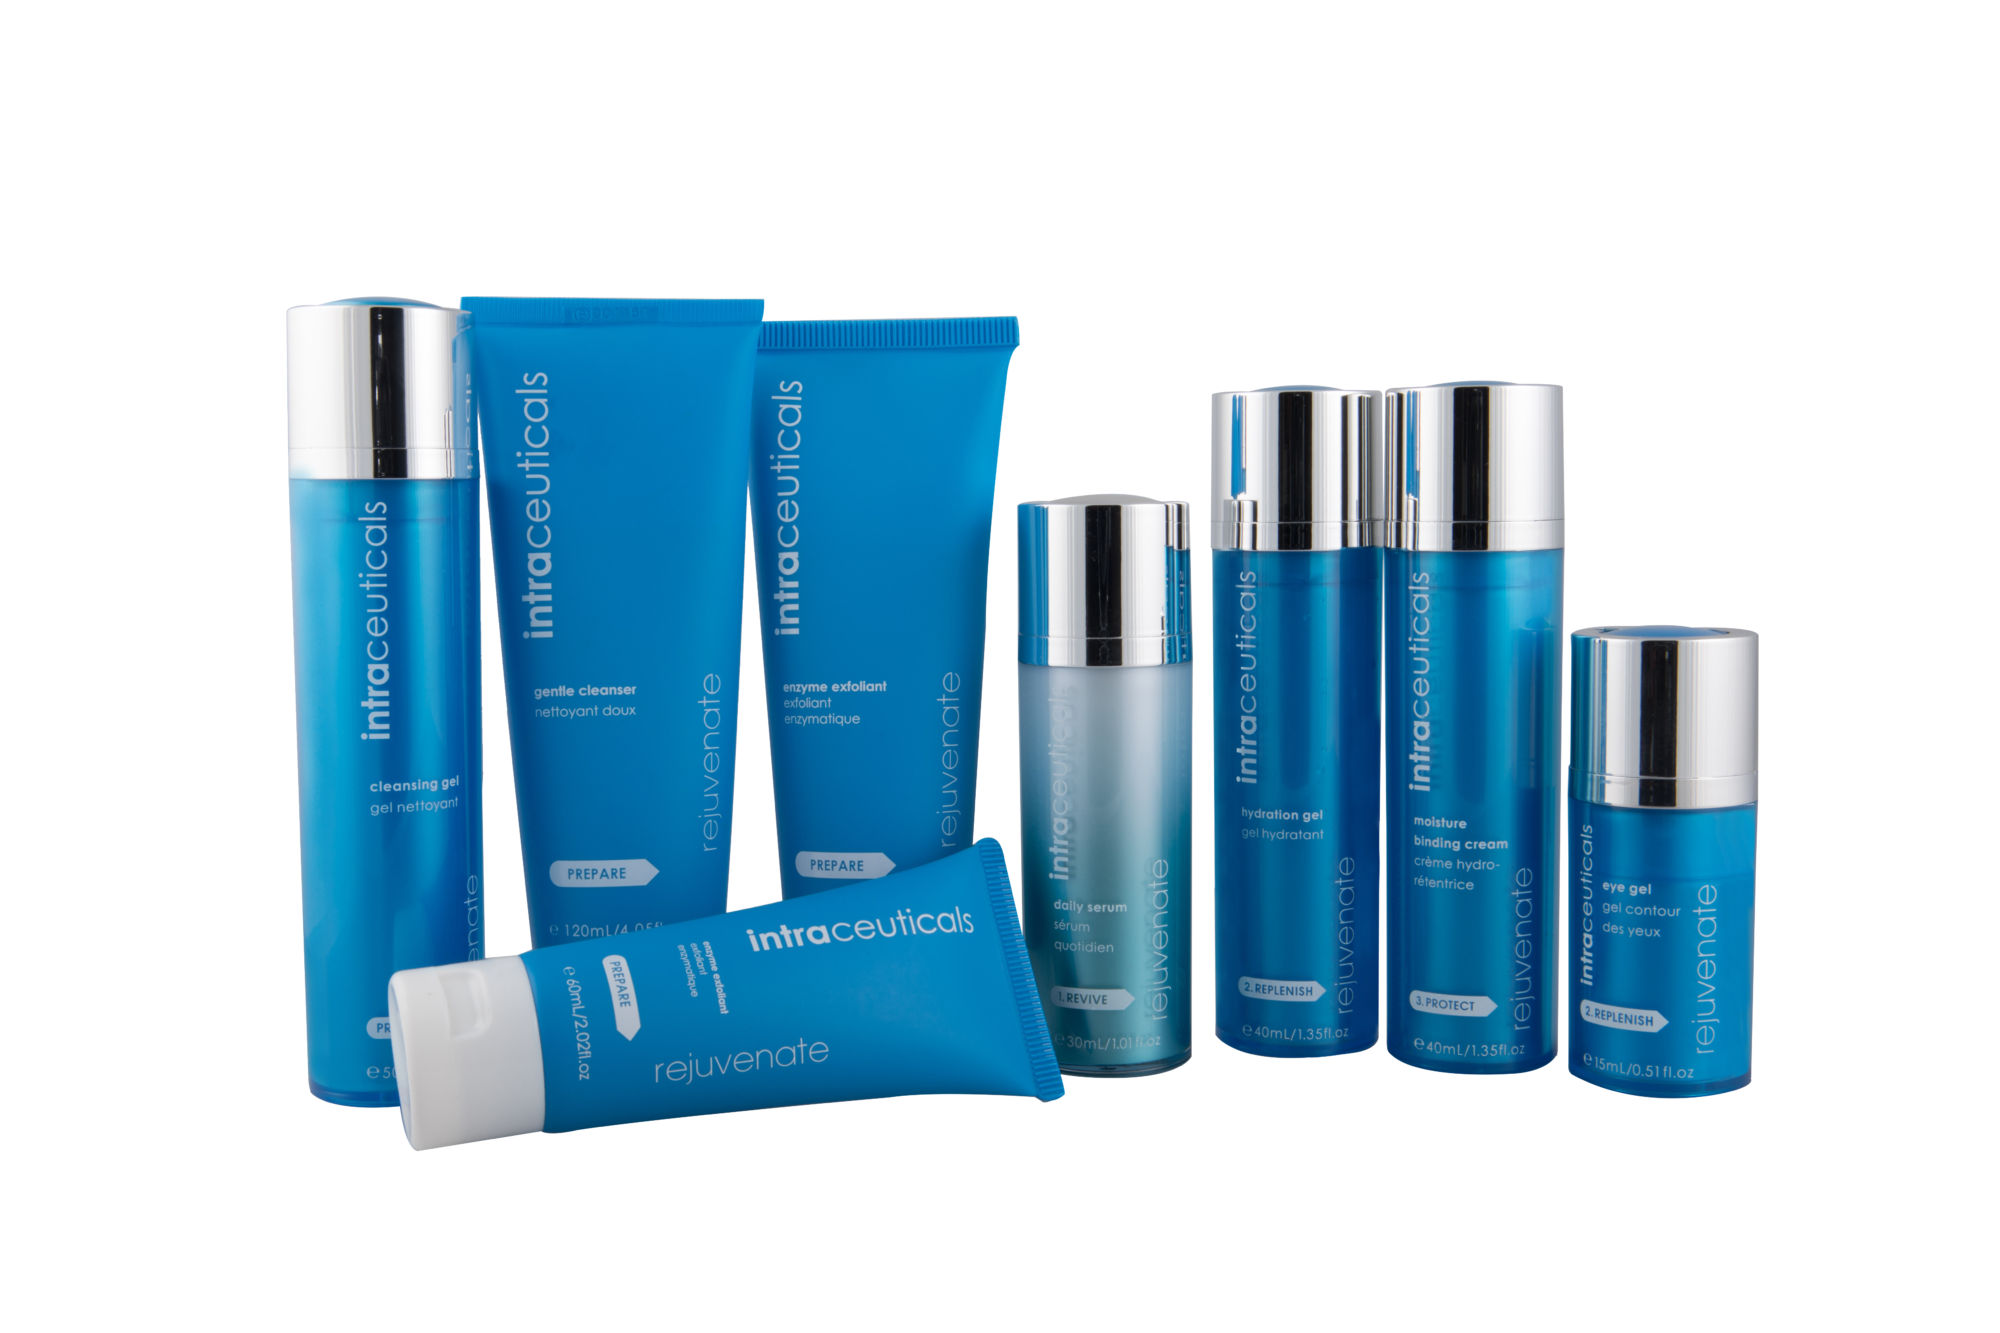 Rejuvenate product range